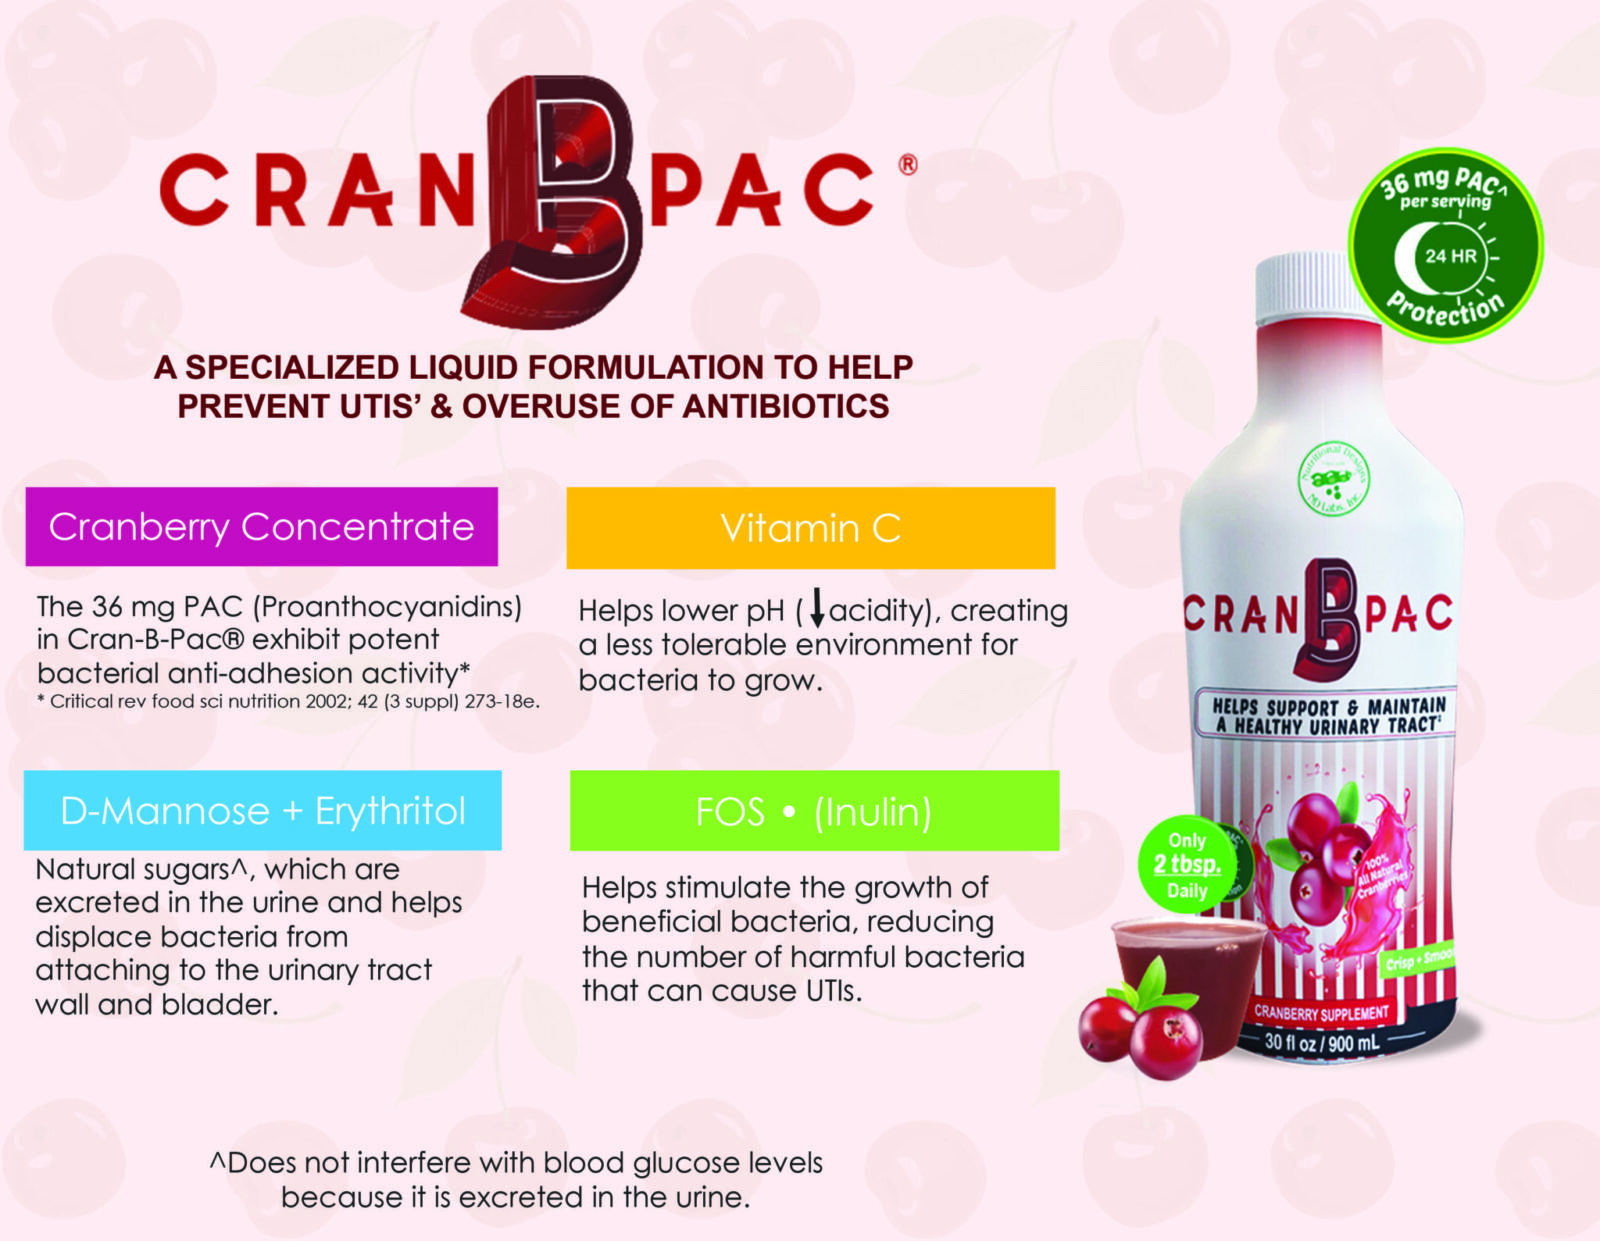 Cran-B-Pac® is a specialized formulation to help prevent UTI's and overuse of antibiotics.